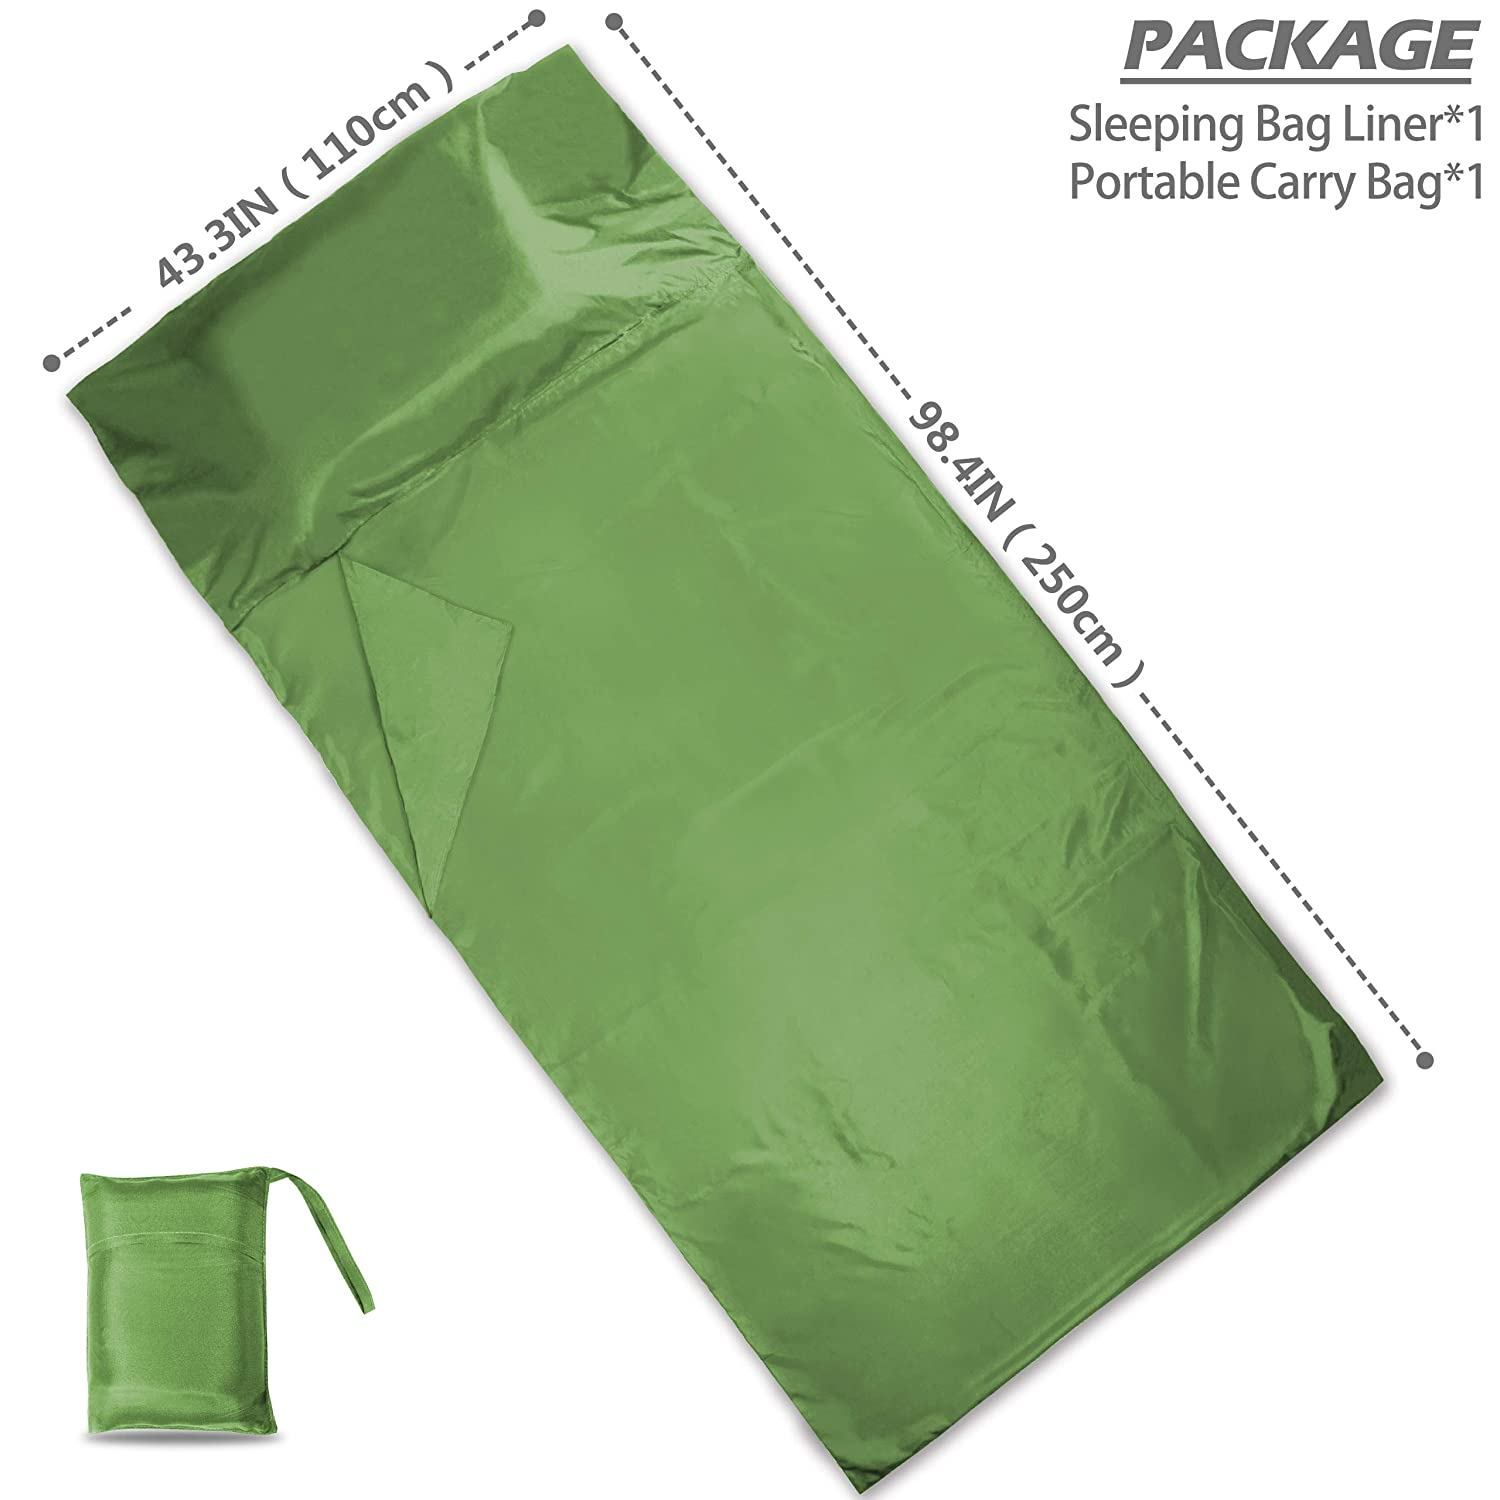 DIMPLES EXCEL Sleeping Bag Liner with Luxurious Space